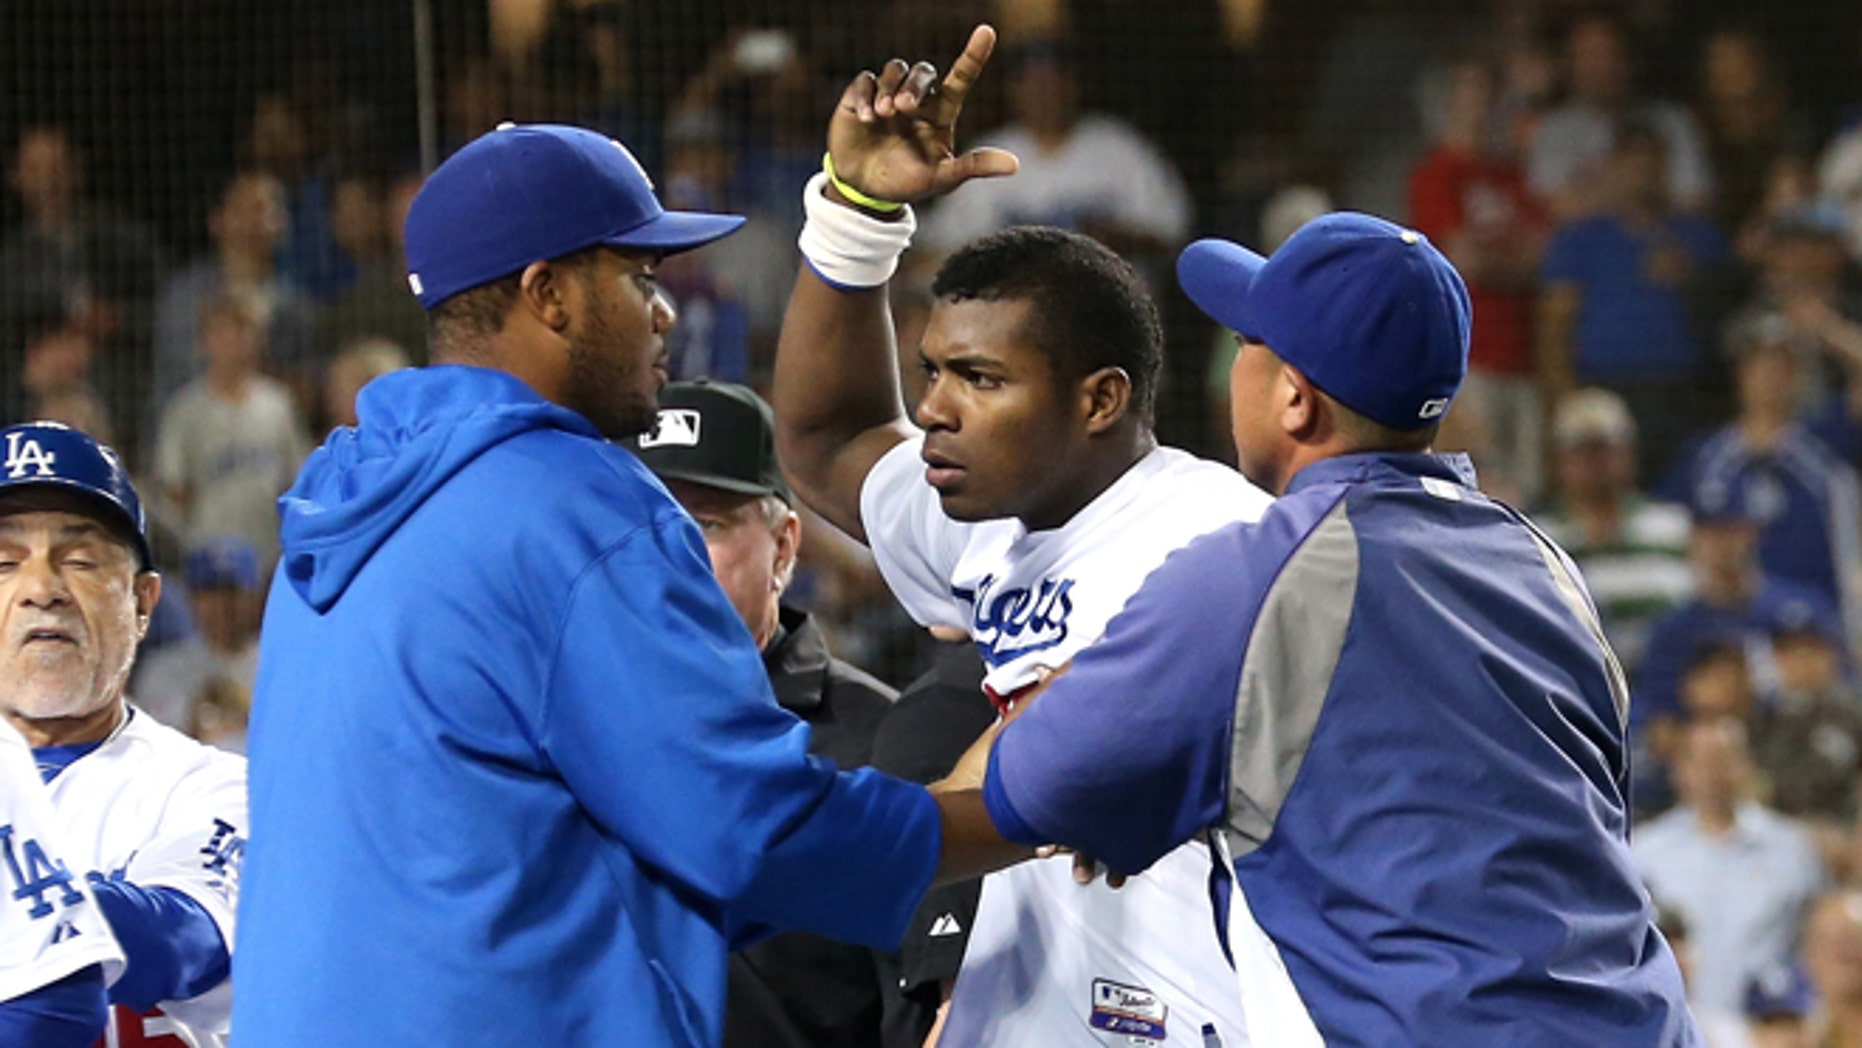 LOS ANGELES, CA - JUNE 11:  Yasiel Puig #66 of the Los Angeles Dodgers is restrained by teammates during a benches clearing brawl after Zack Greinke was hit by a pitch in the seventh inning against the Arizona Diamondbacks at Dodger Stadium on June 11, 2013 in Los Angeles, California.  Puig had been hit earlier in the game.  (Photo by Stephen Dunn/Getty Images)